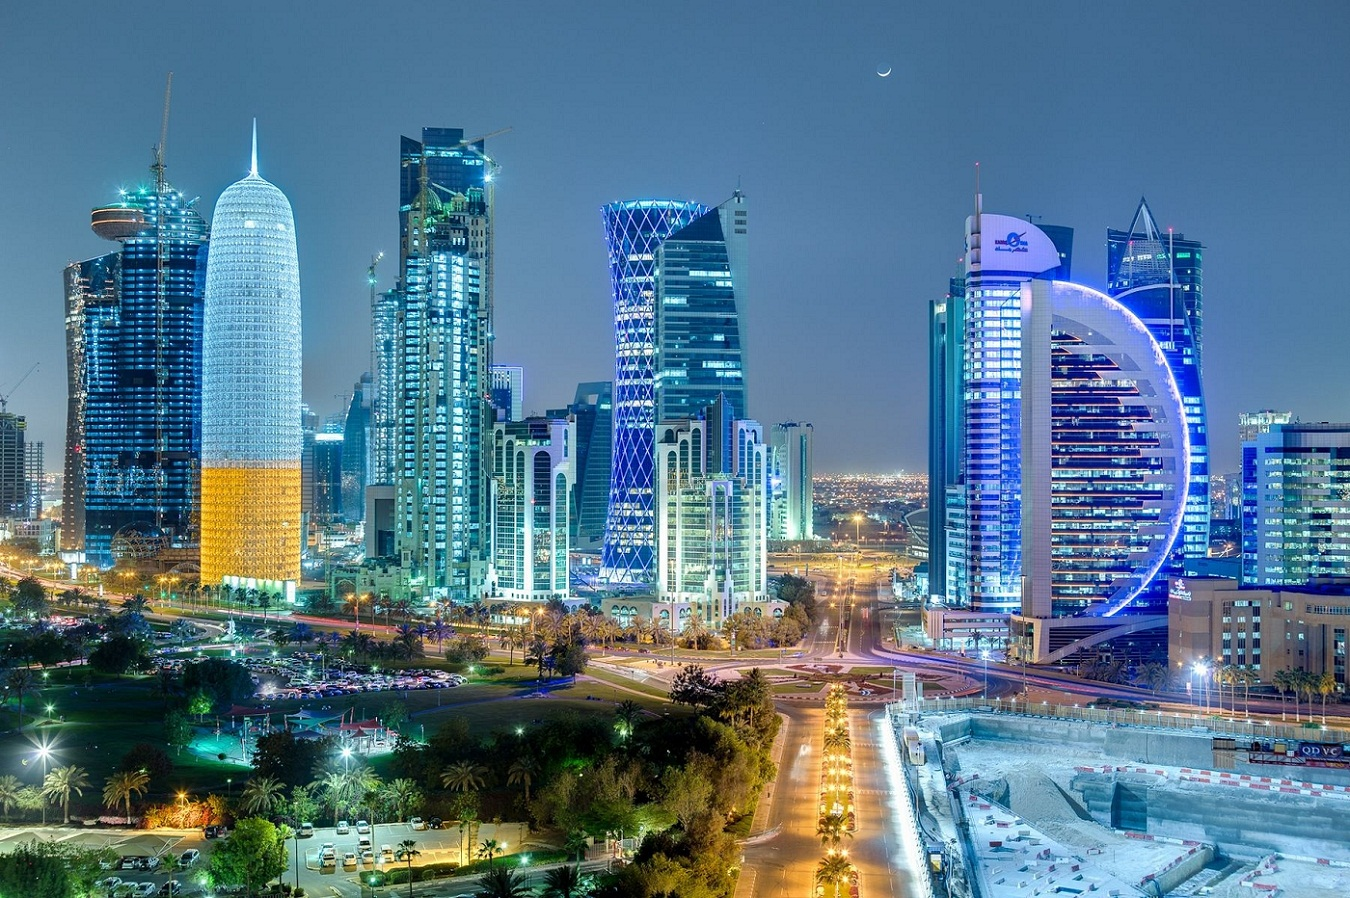 Spectacular-Cityscapes-at-night-in-Qatar